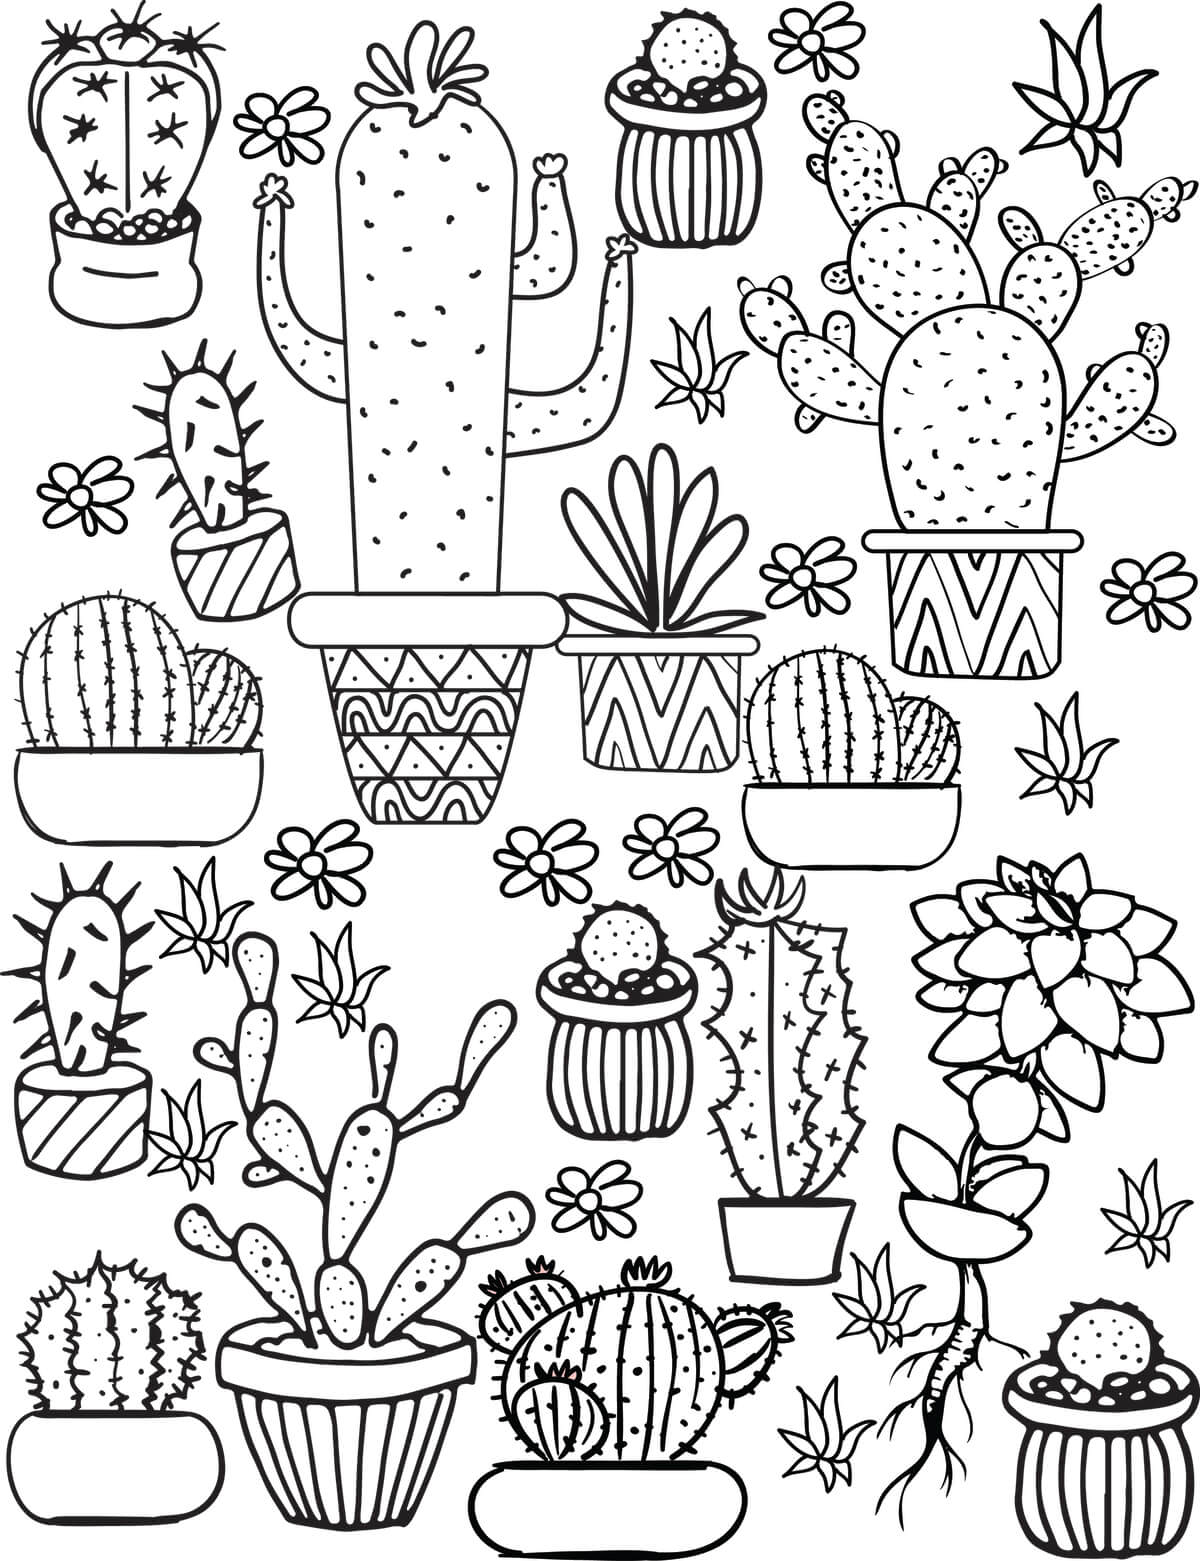 cacti-and-succulents-coloring-pages